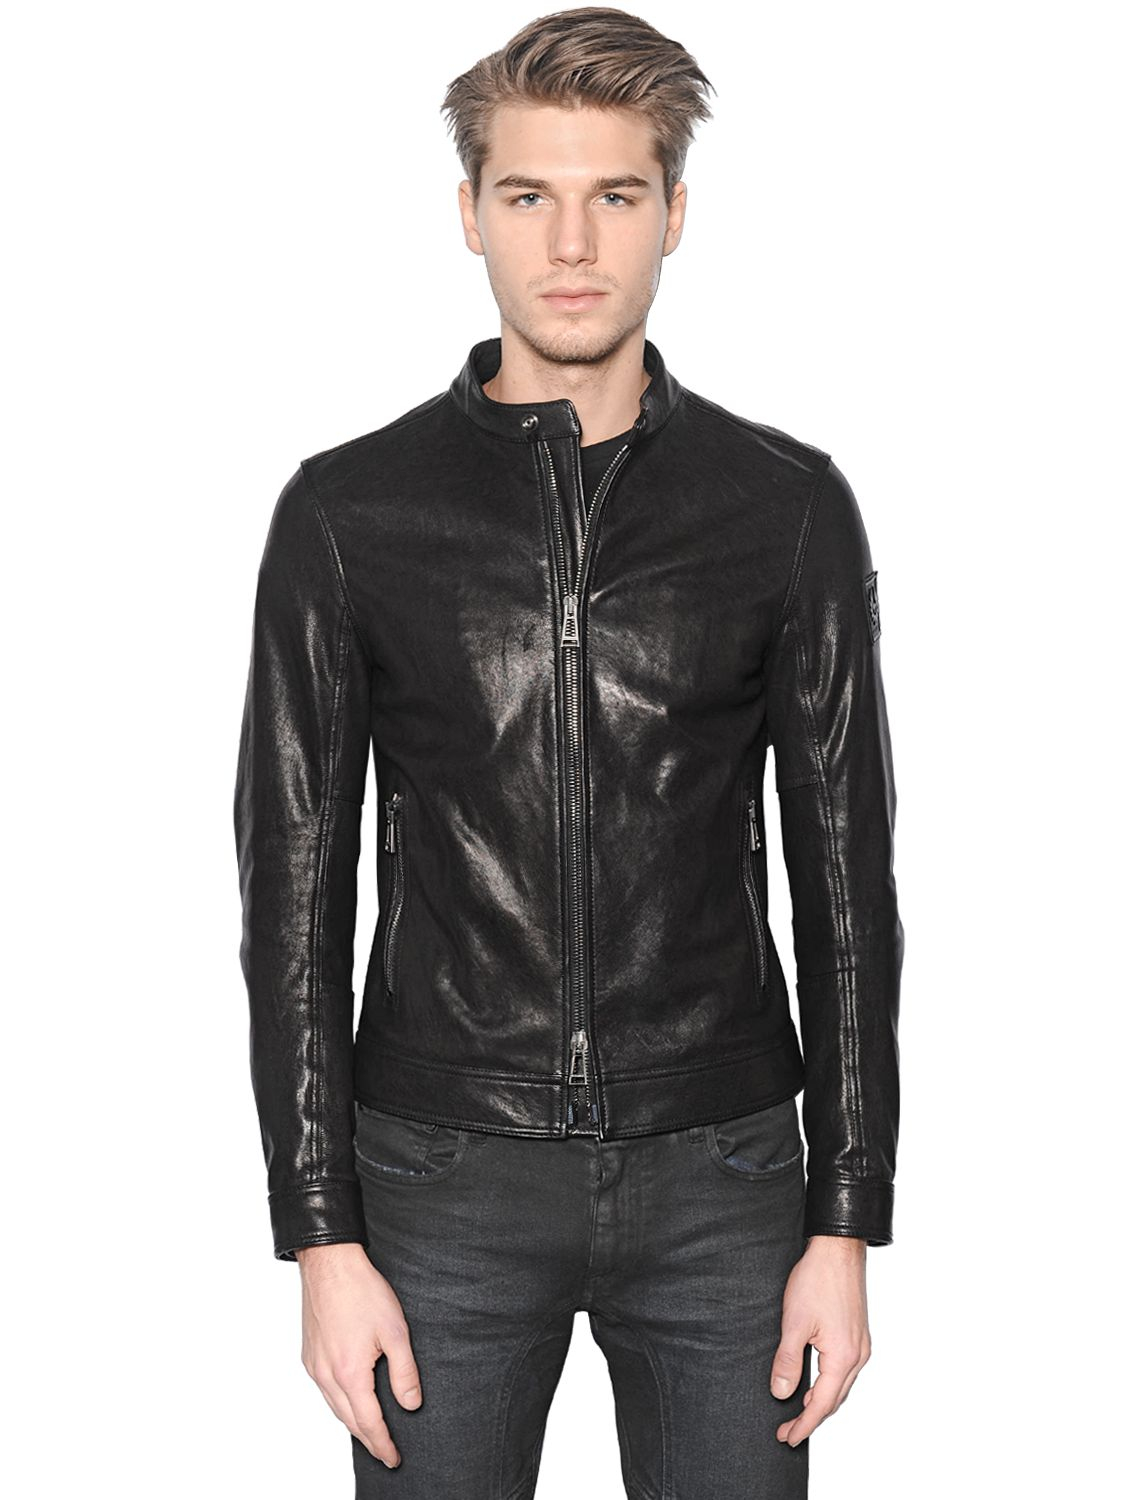 Belstaff Mens Leather Motorcycle Jacket